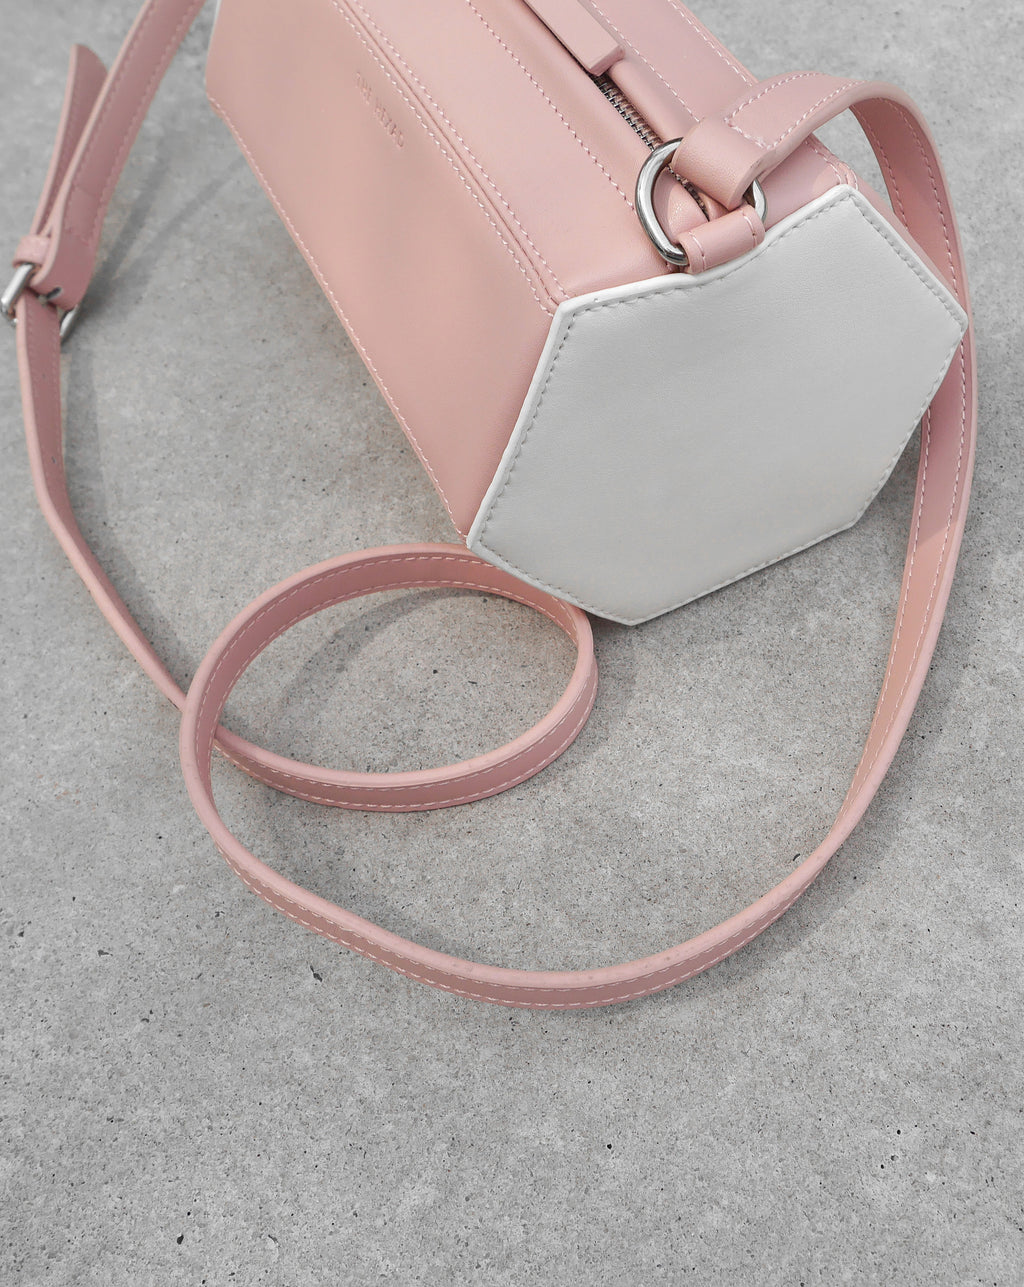 Quirky contrasting color crossbosy in baby shell pink and white - The Hexad Bags